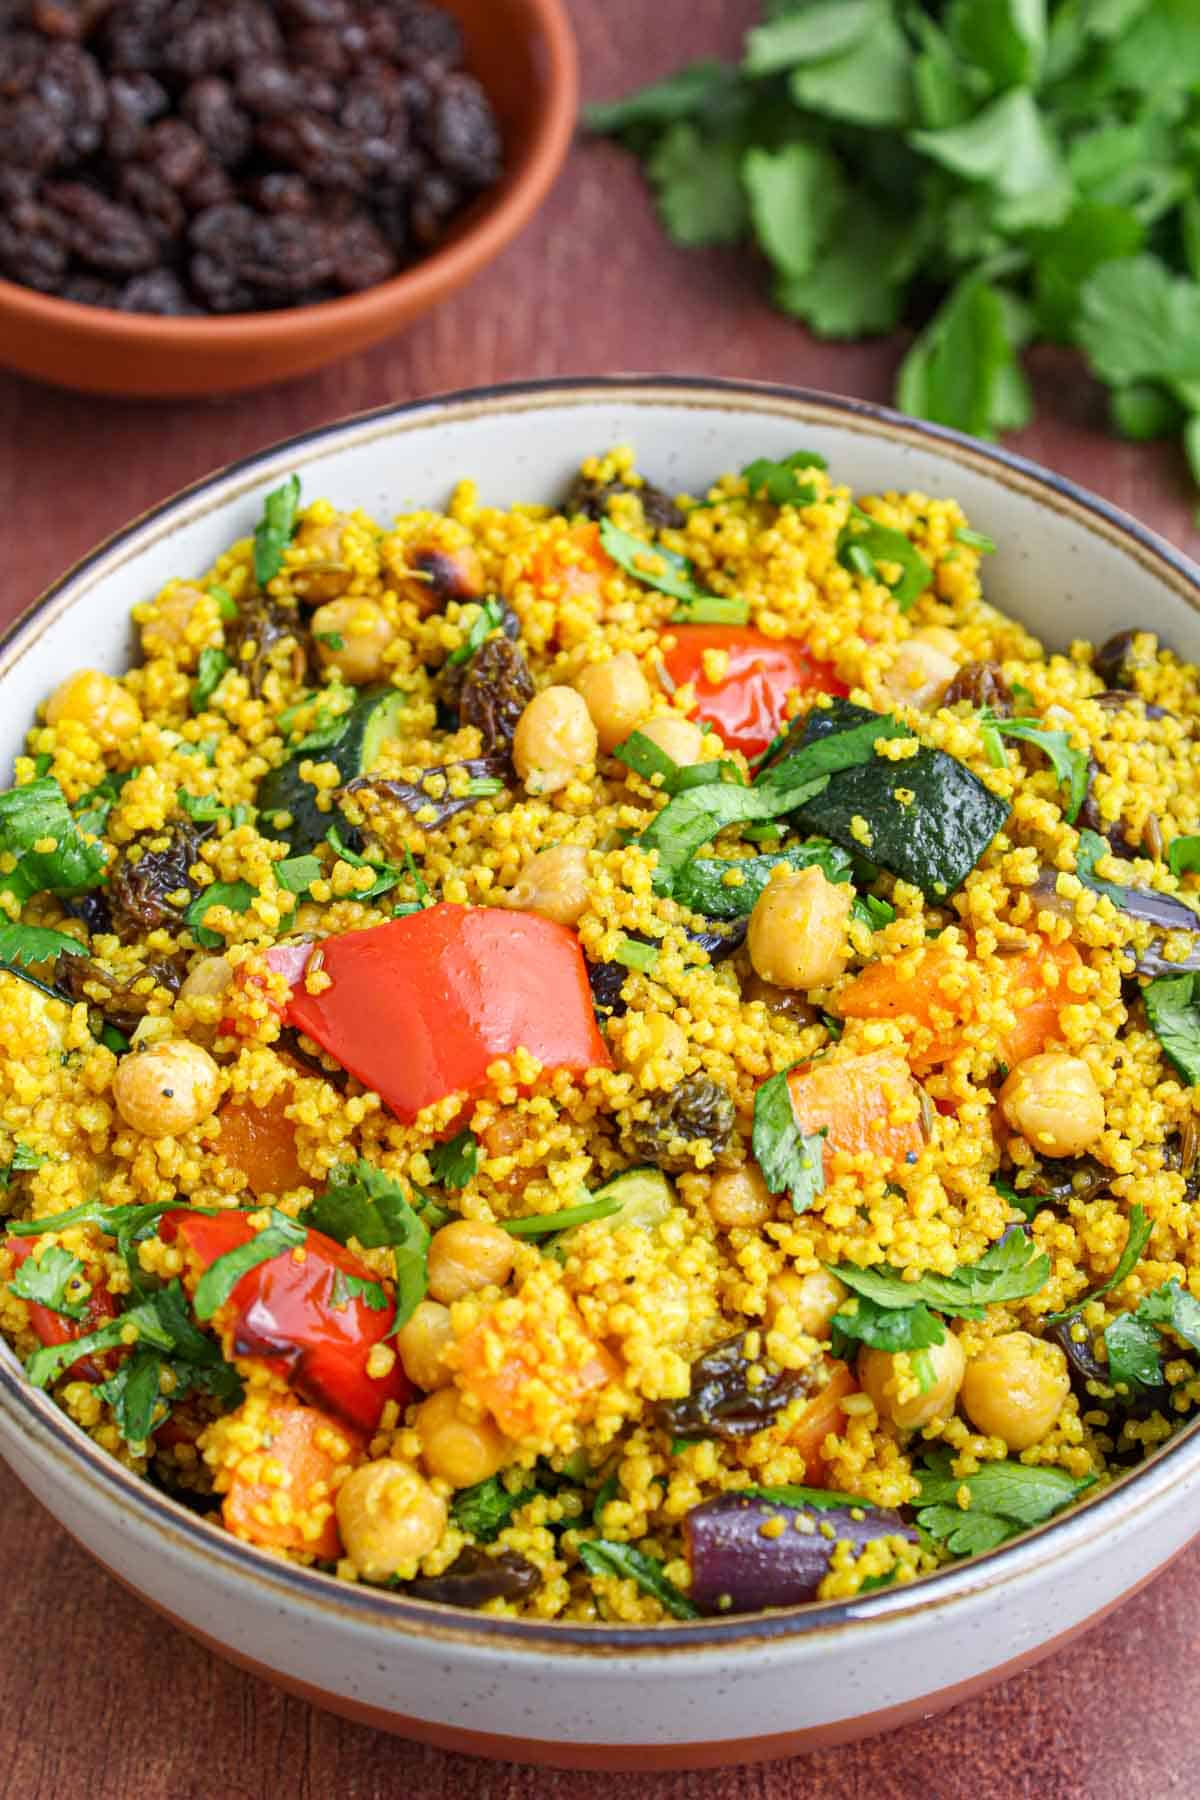 Moroccan Couscous with Roasted Veg in Bowl Close-Up